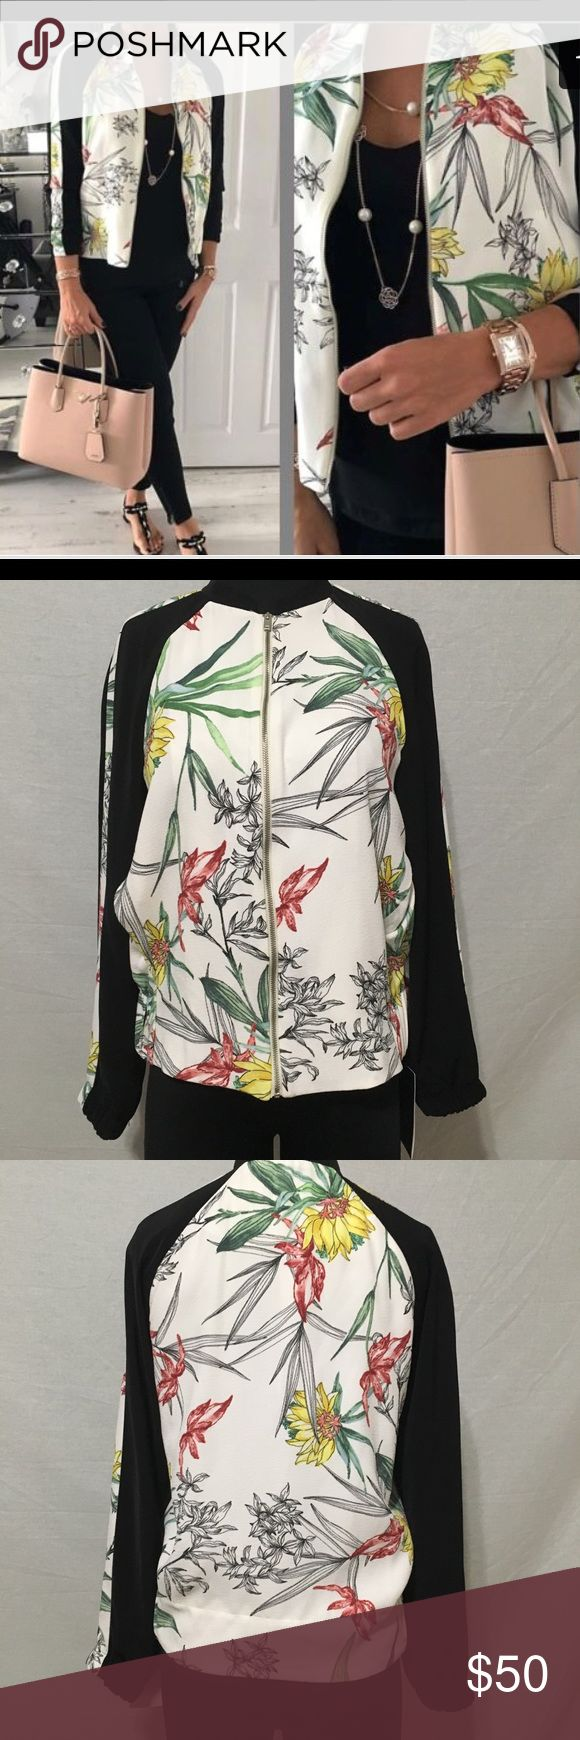 Zara Floral Printed Bomber Jacket- New New with tags Size XS Color- Off white  - Floral Print - Zip Front - Bomber style Zara Jackets & Coats